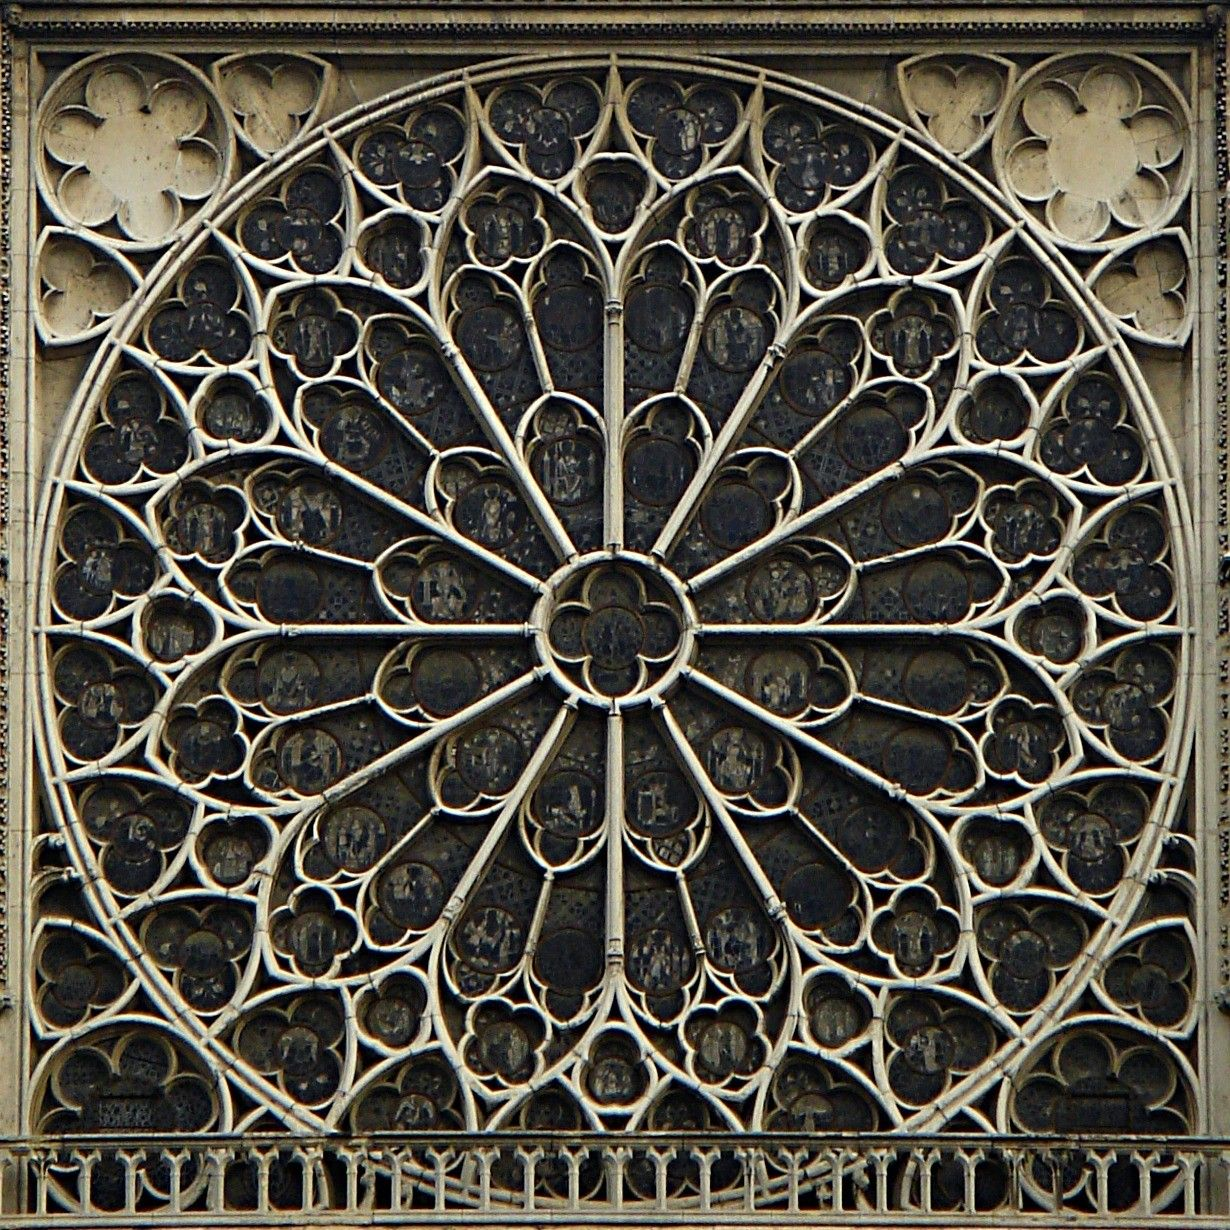 Unified architectural theory chapter 14 arch for Rose window design